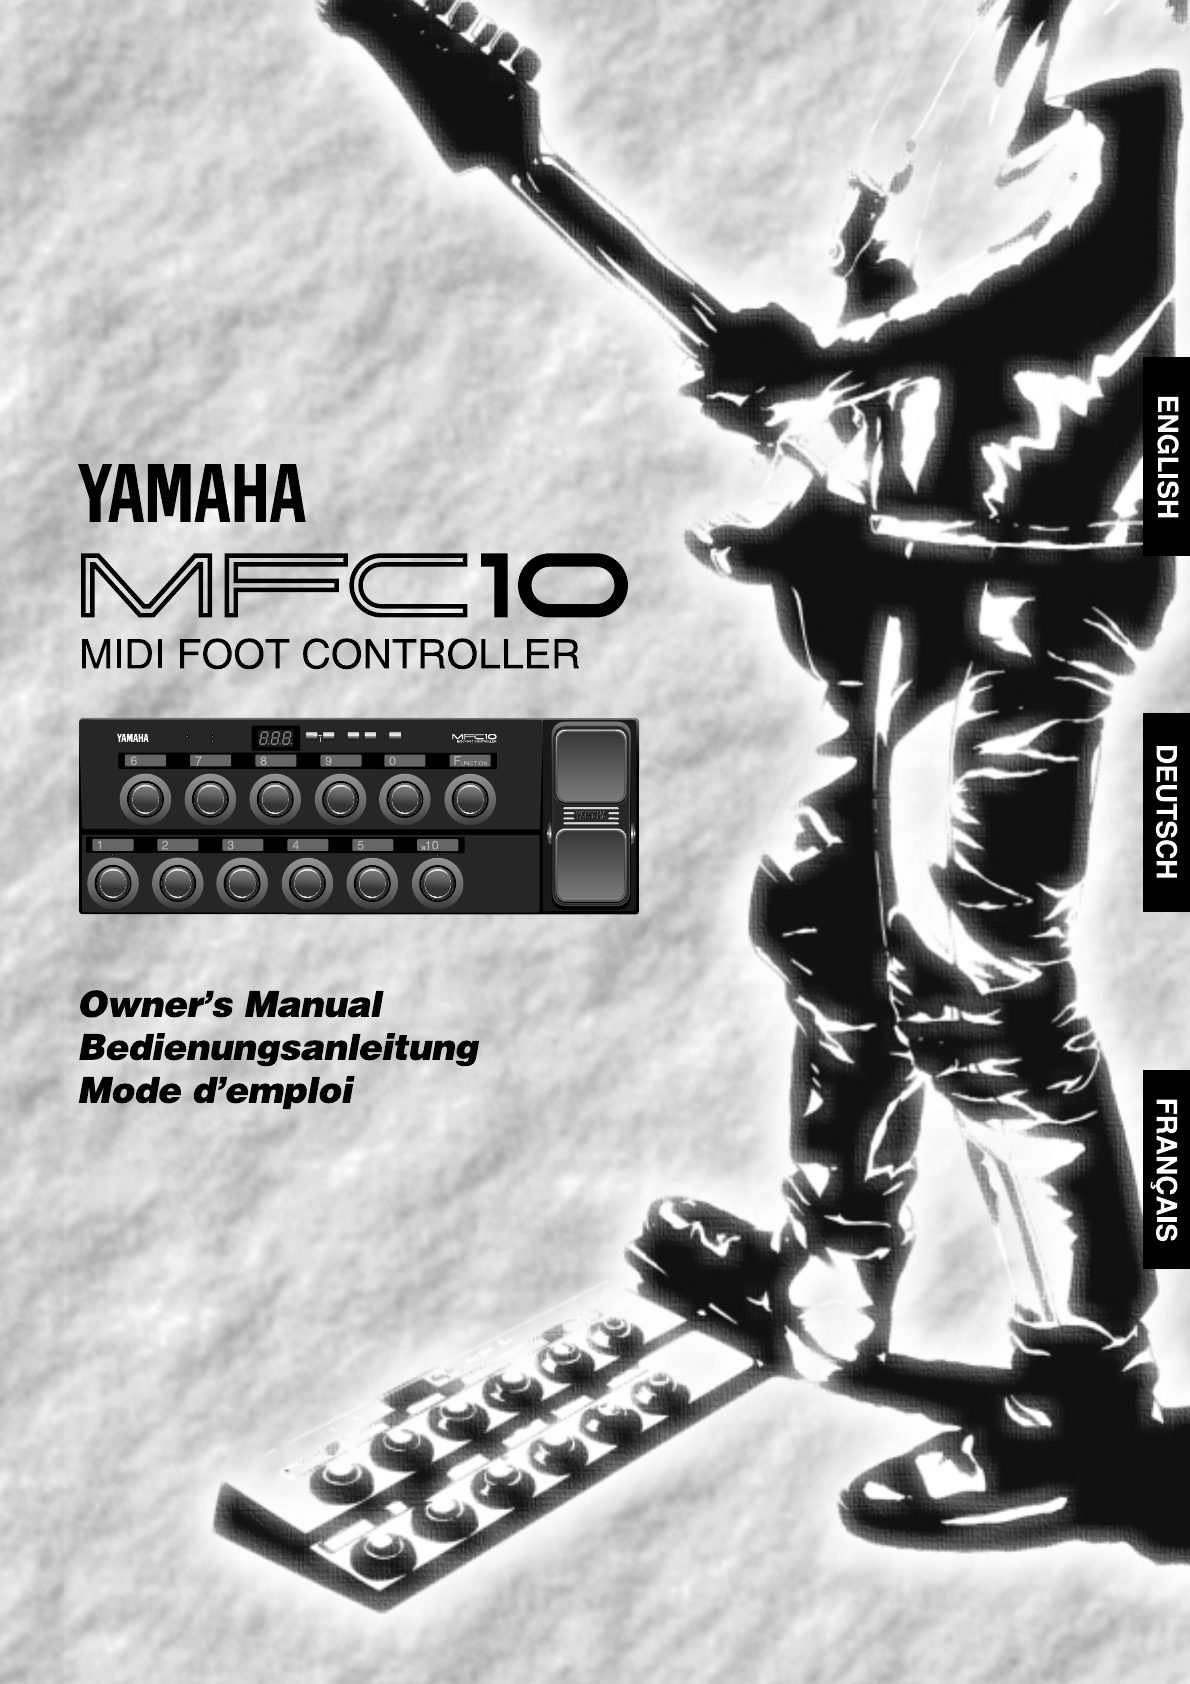 Yamaha Mfc 10 Owners Manual G